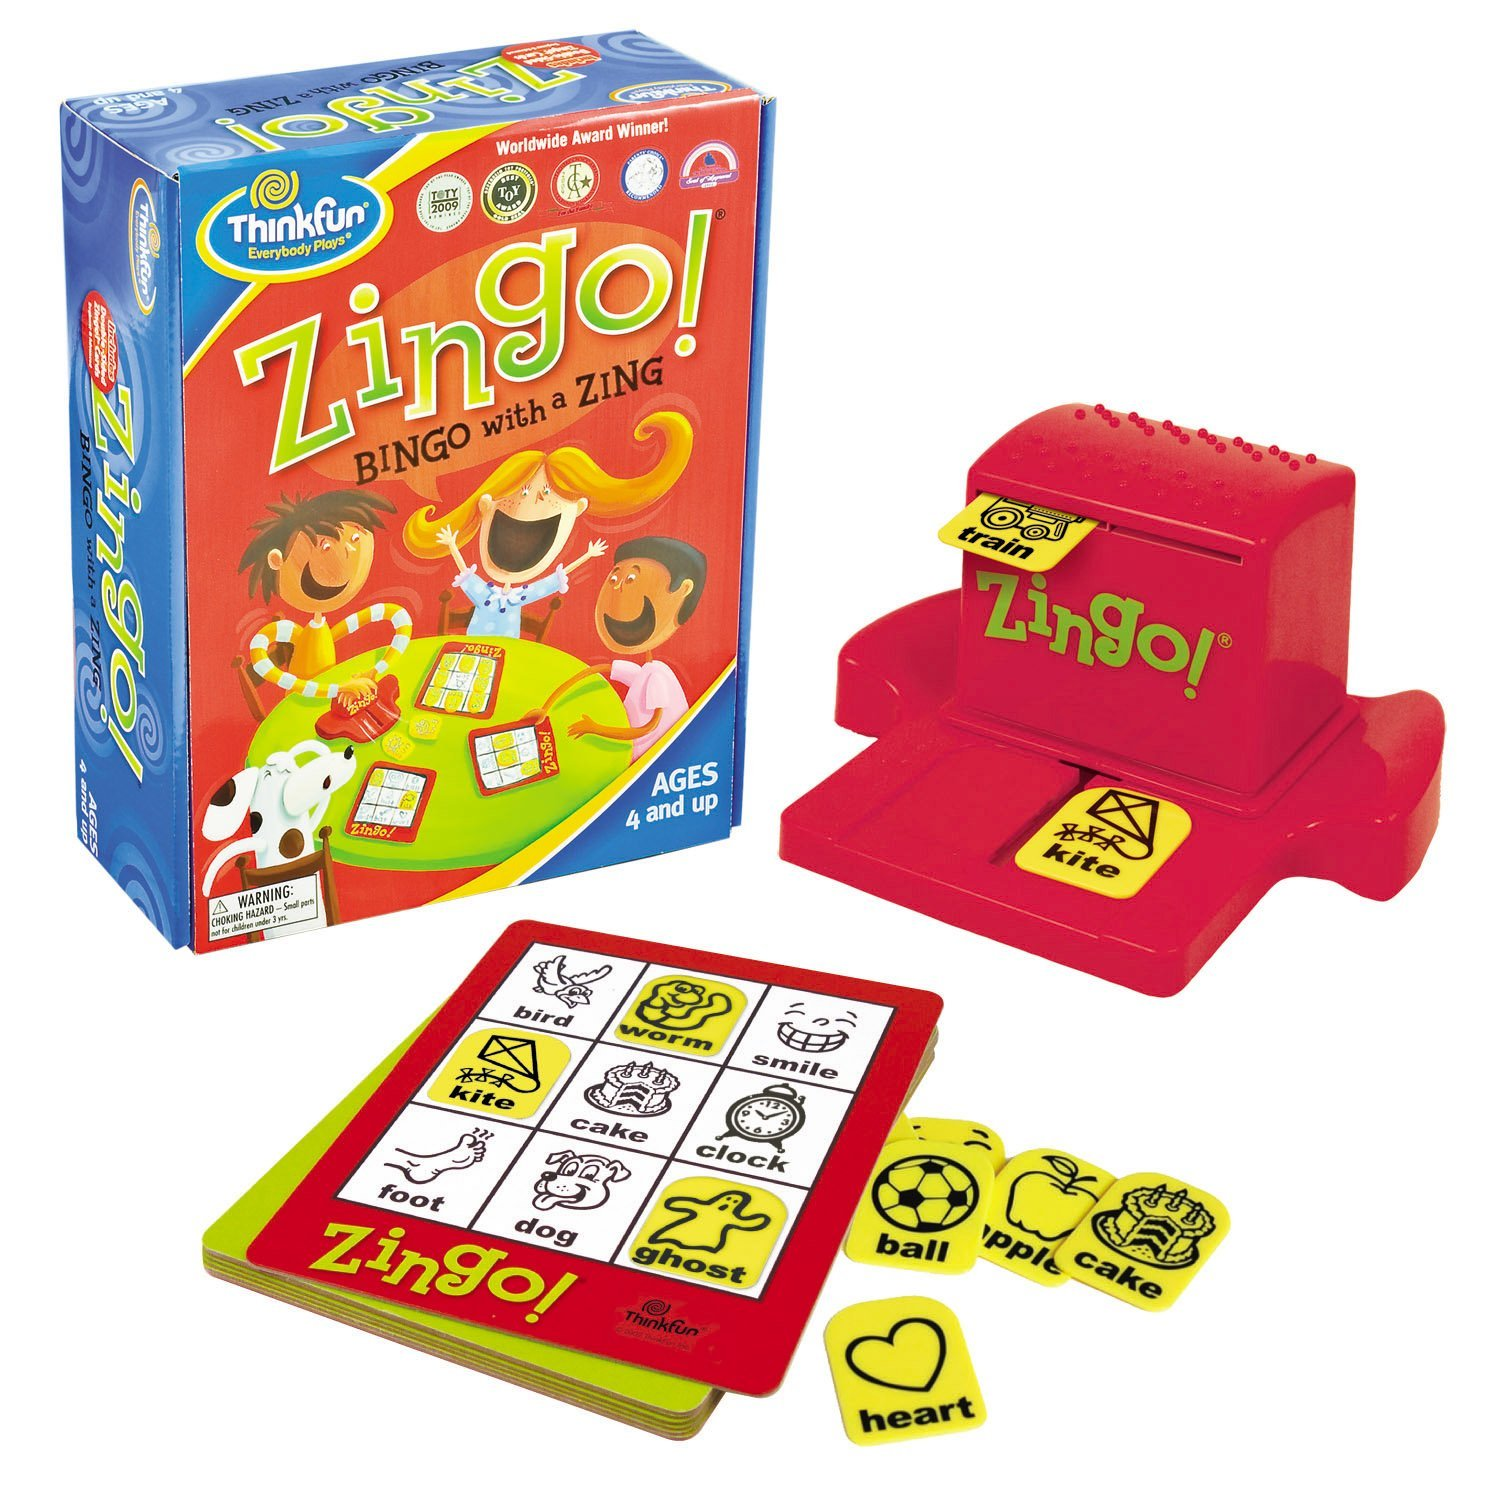 Learning Toys And Games : Educational board games for kids tgif this grandma